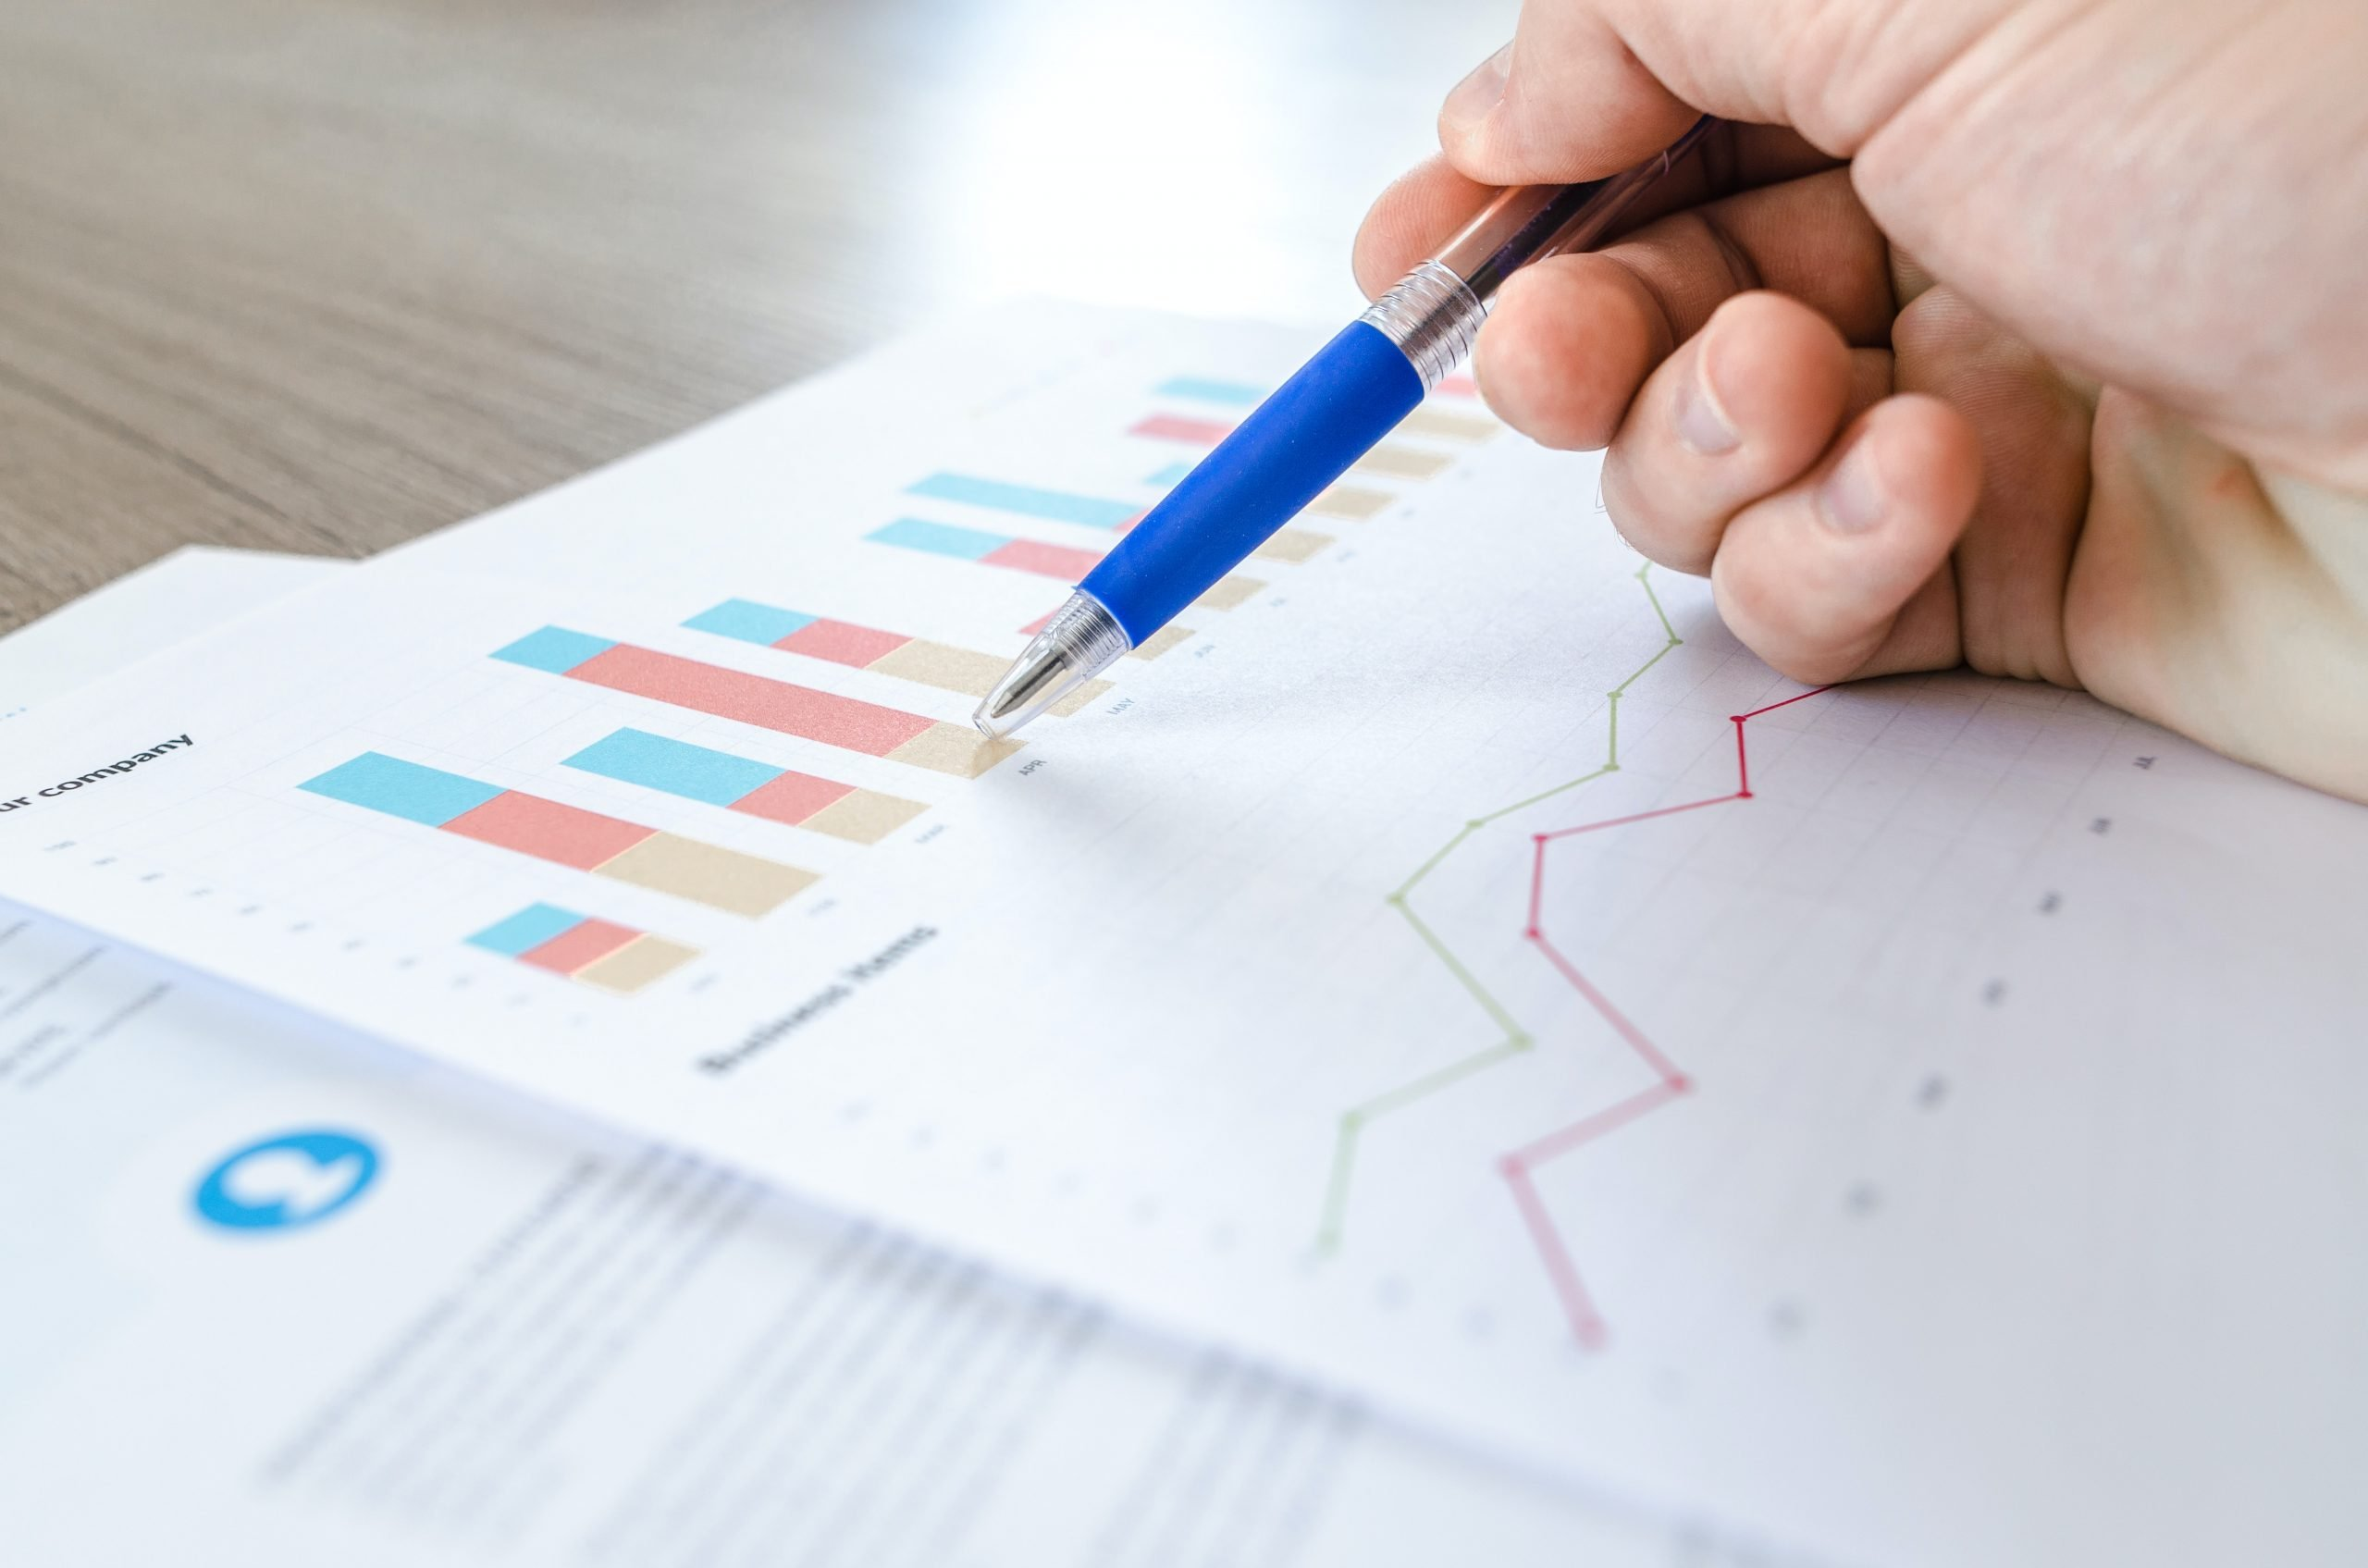 A photo of a hand using a pen while pointing at a printout of charts.